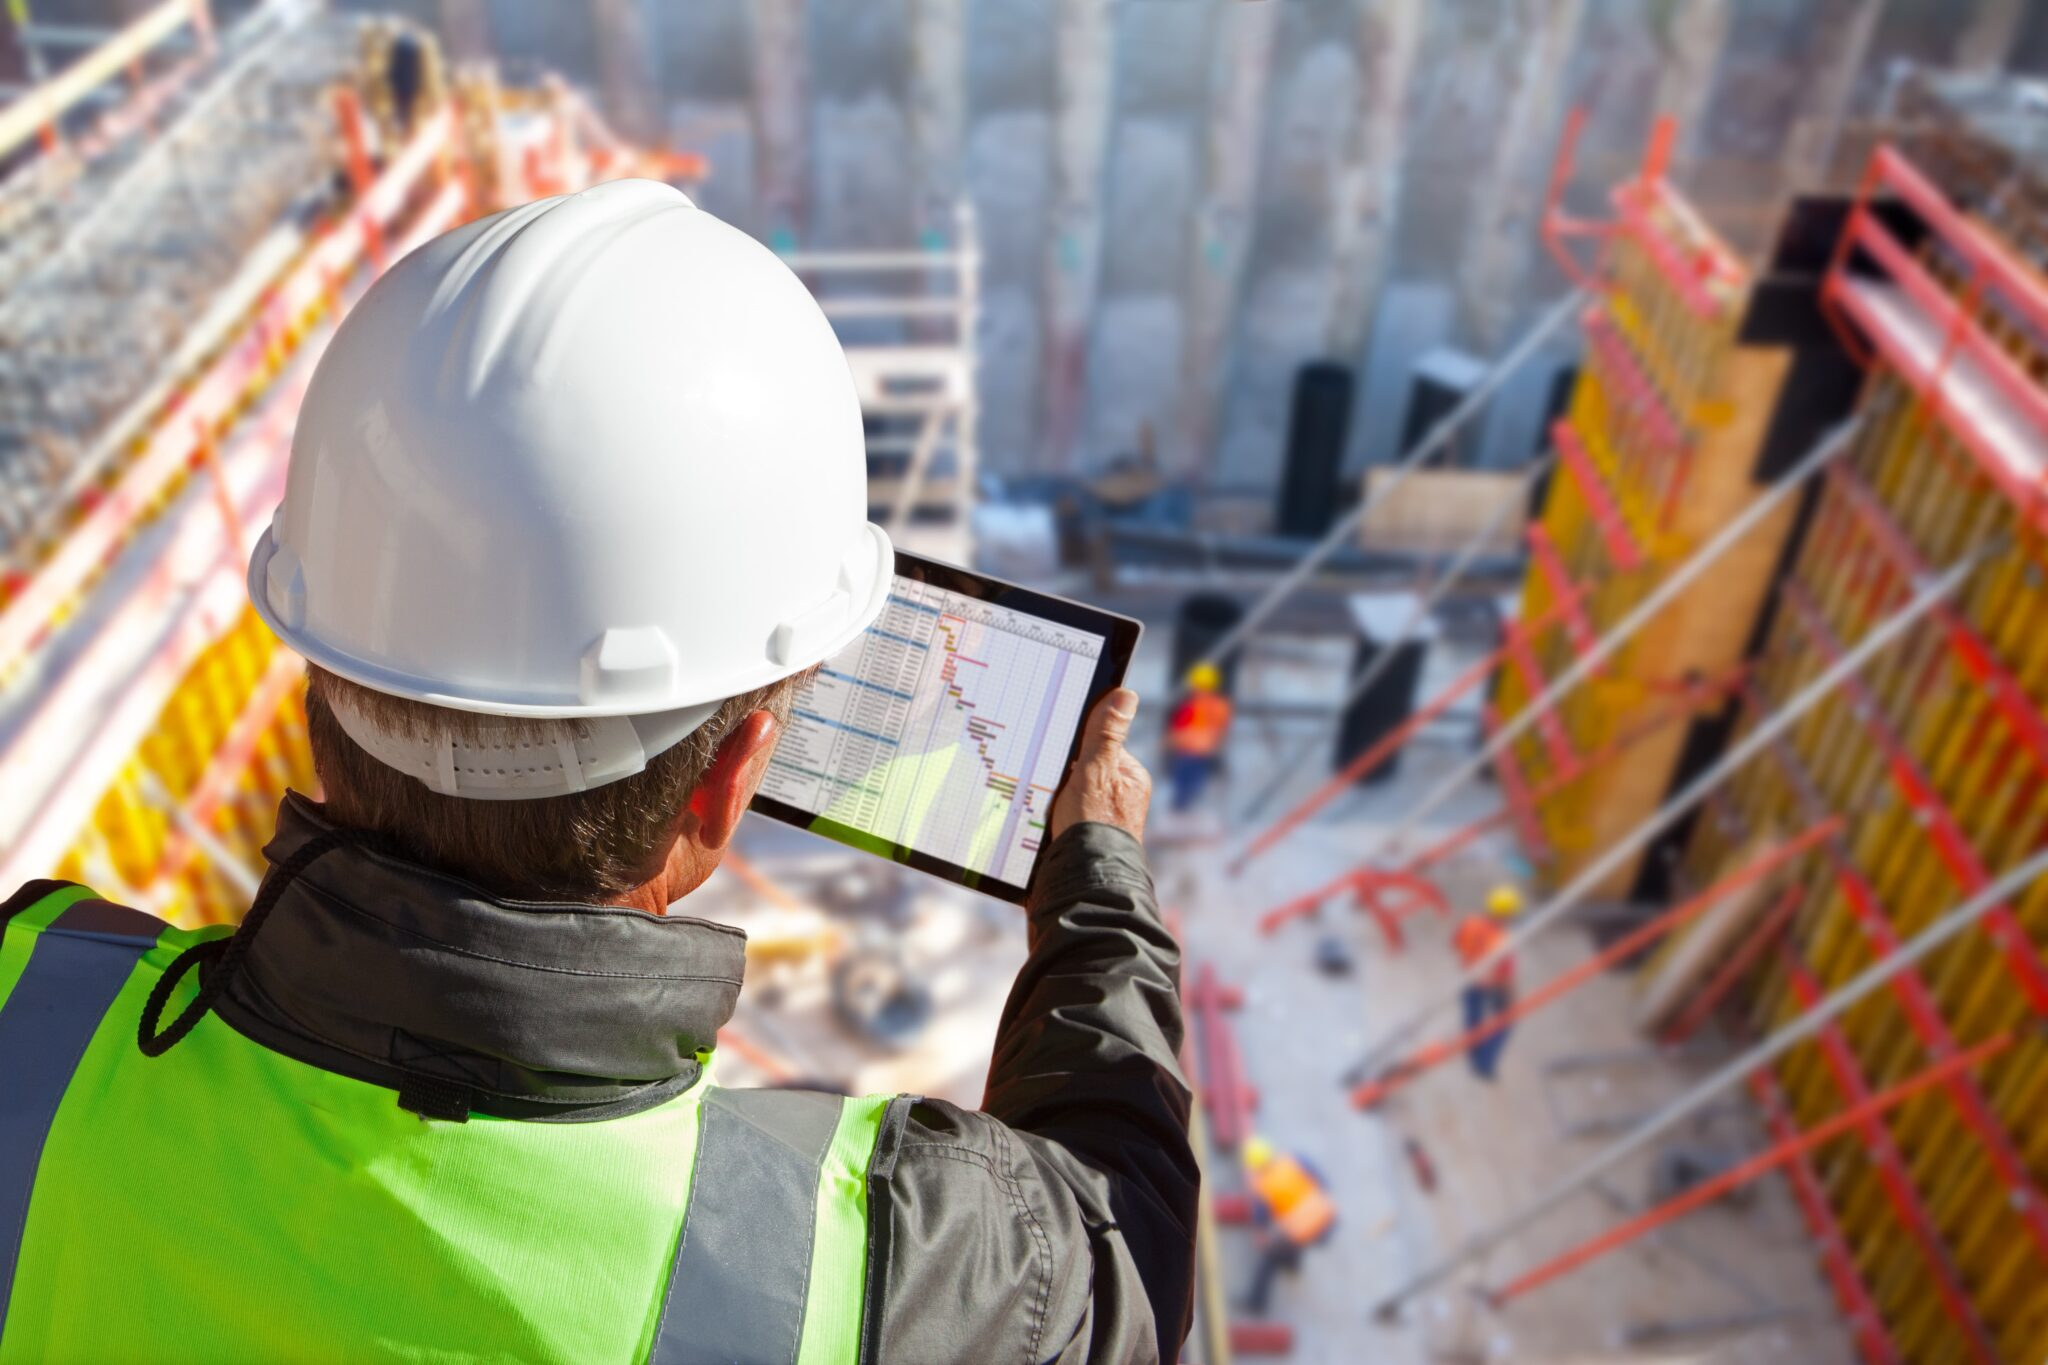 What happens when a contractor develops construction software?